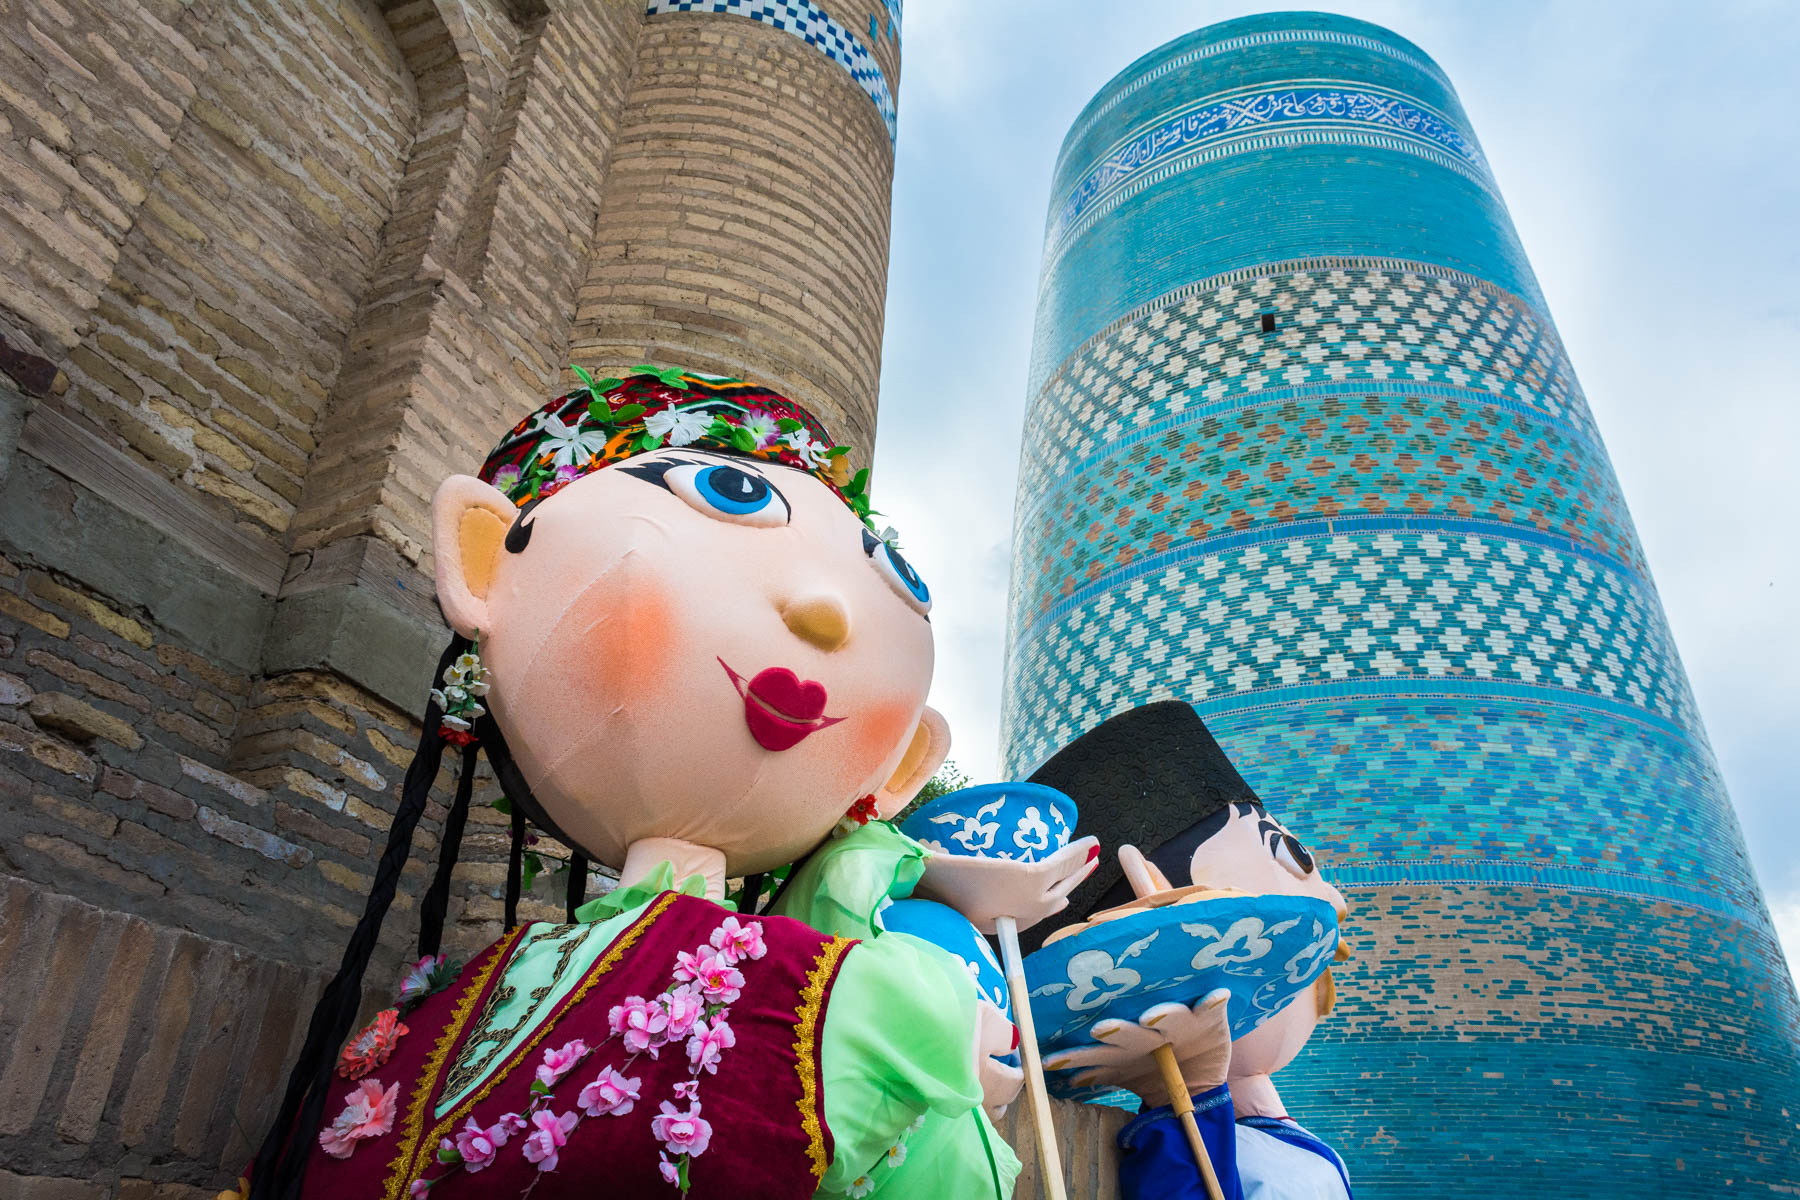 Puppets in Khiva, Uzbekistan - Lost With Purpose